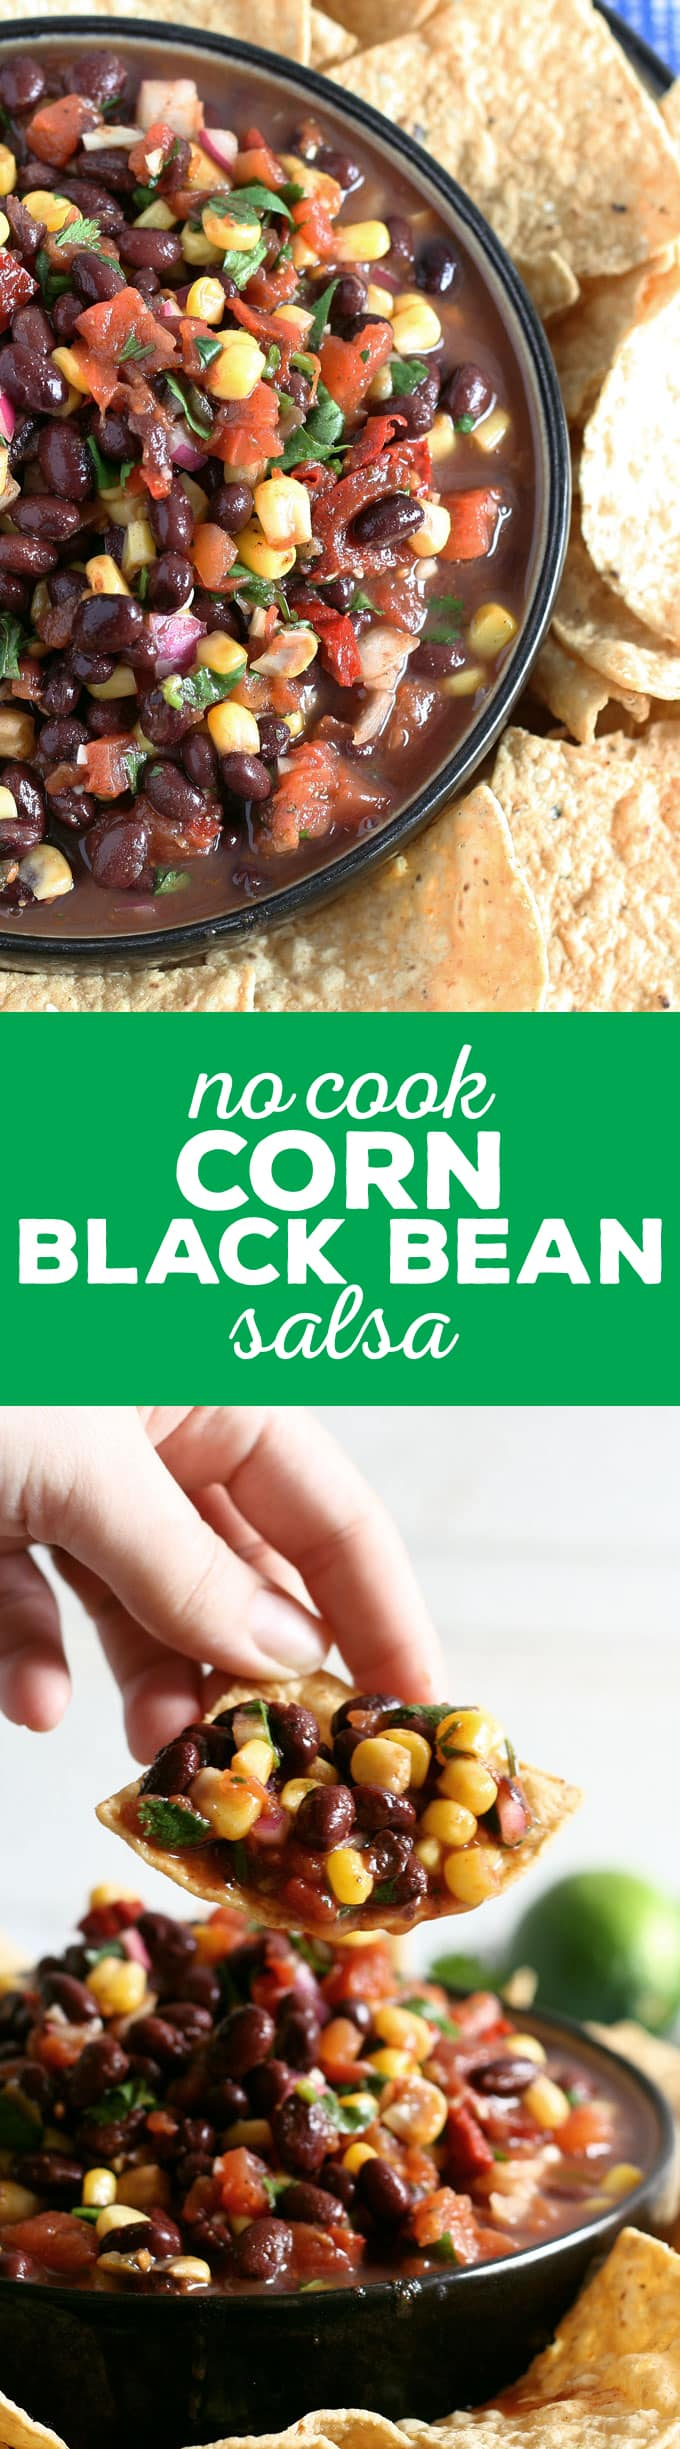 My no cook corn black bean salsa recipe takes 10 minutes to make and is perfect for parties, tailgating and holidays. Make this your new favorite quick appetizer! | honeyandbirch.com